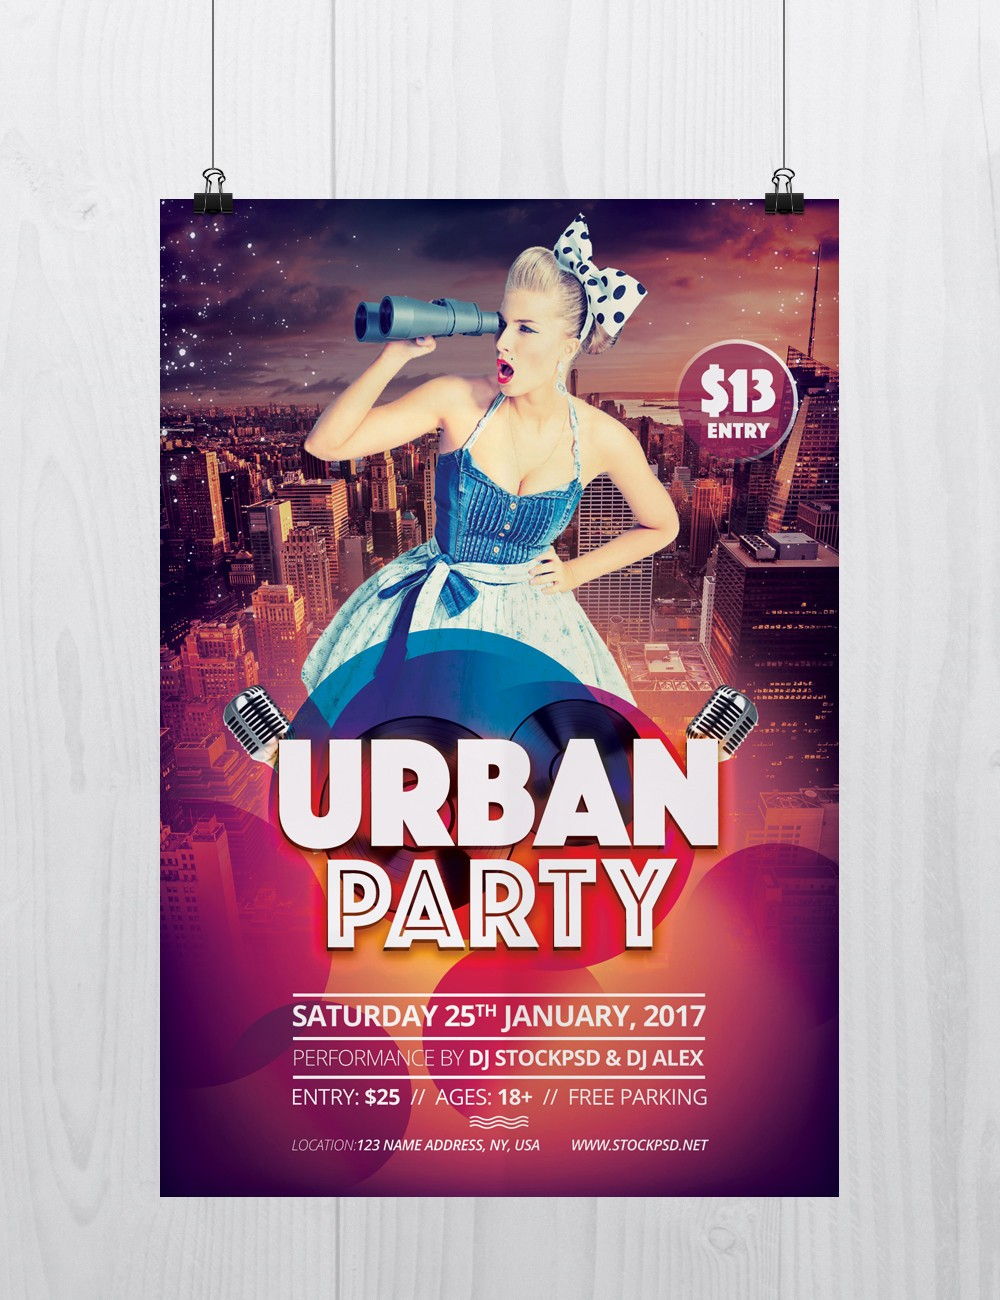 Urban Party – Download Free PSD Flyer Template